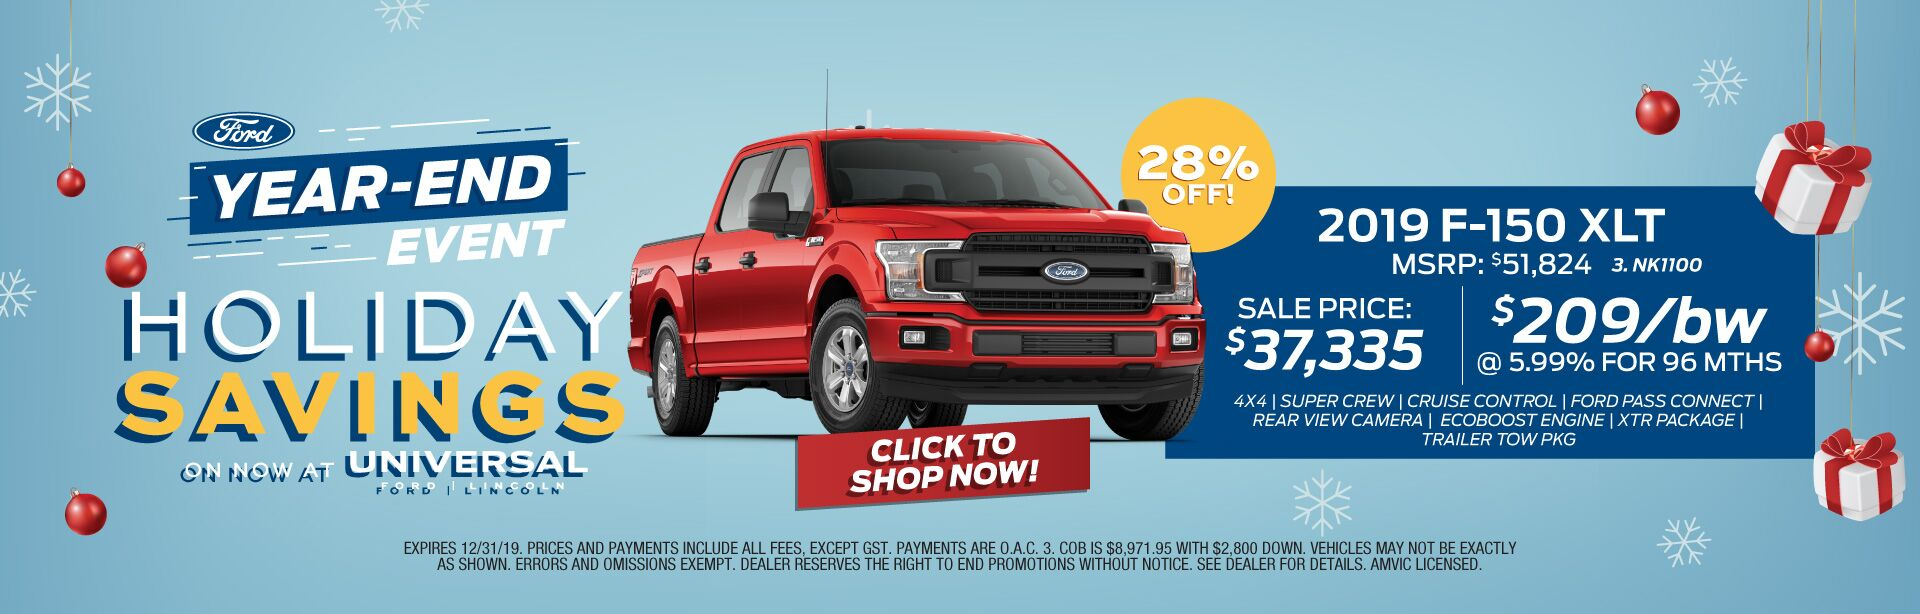 Year-End Event - Holiday Savings F150 XLT